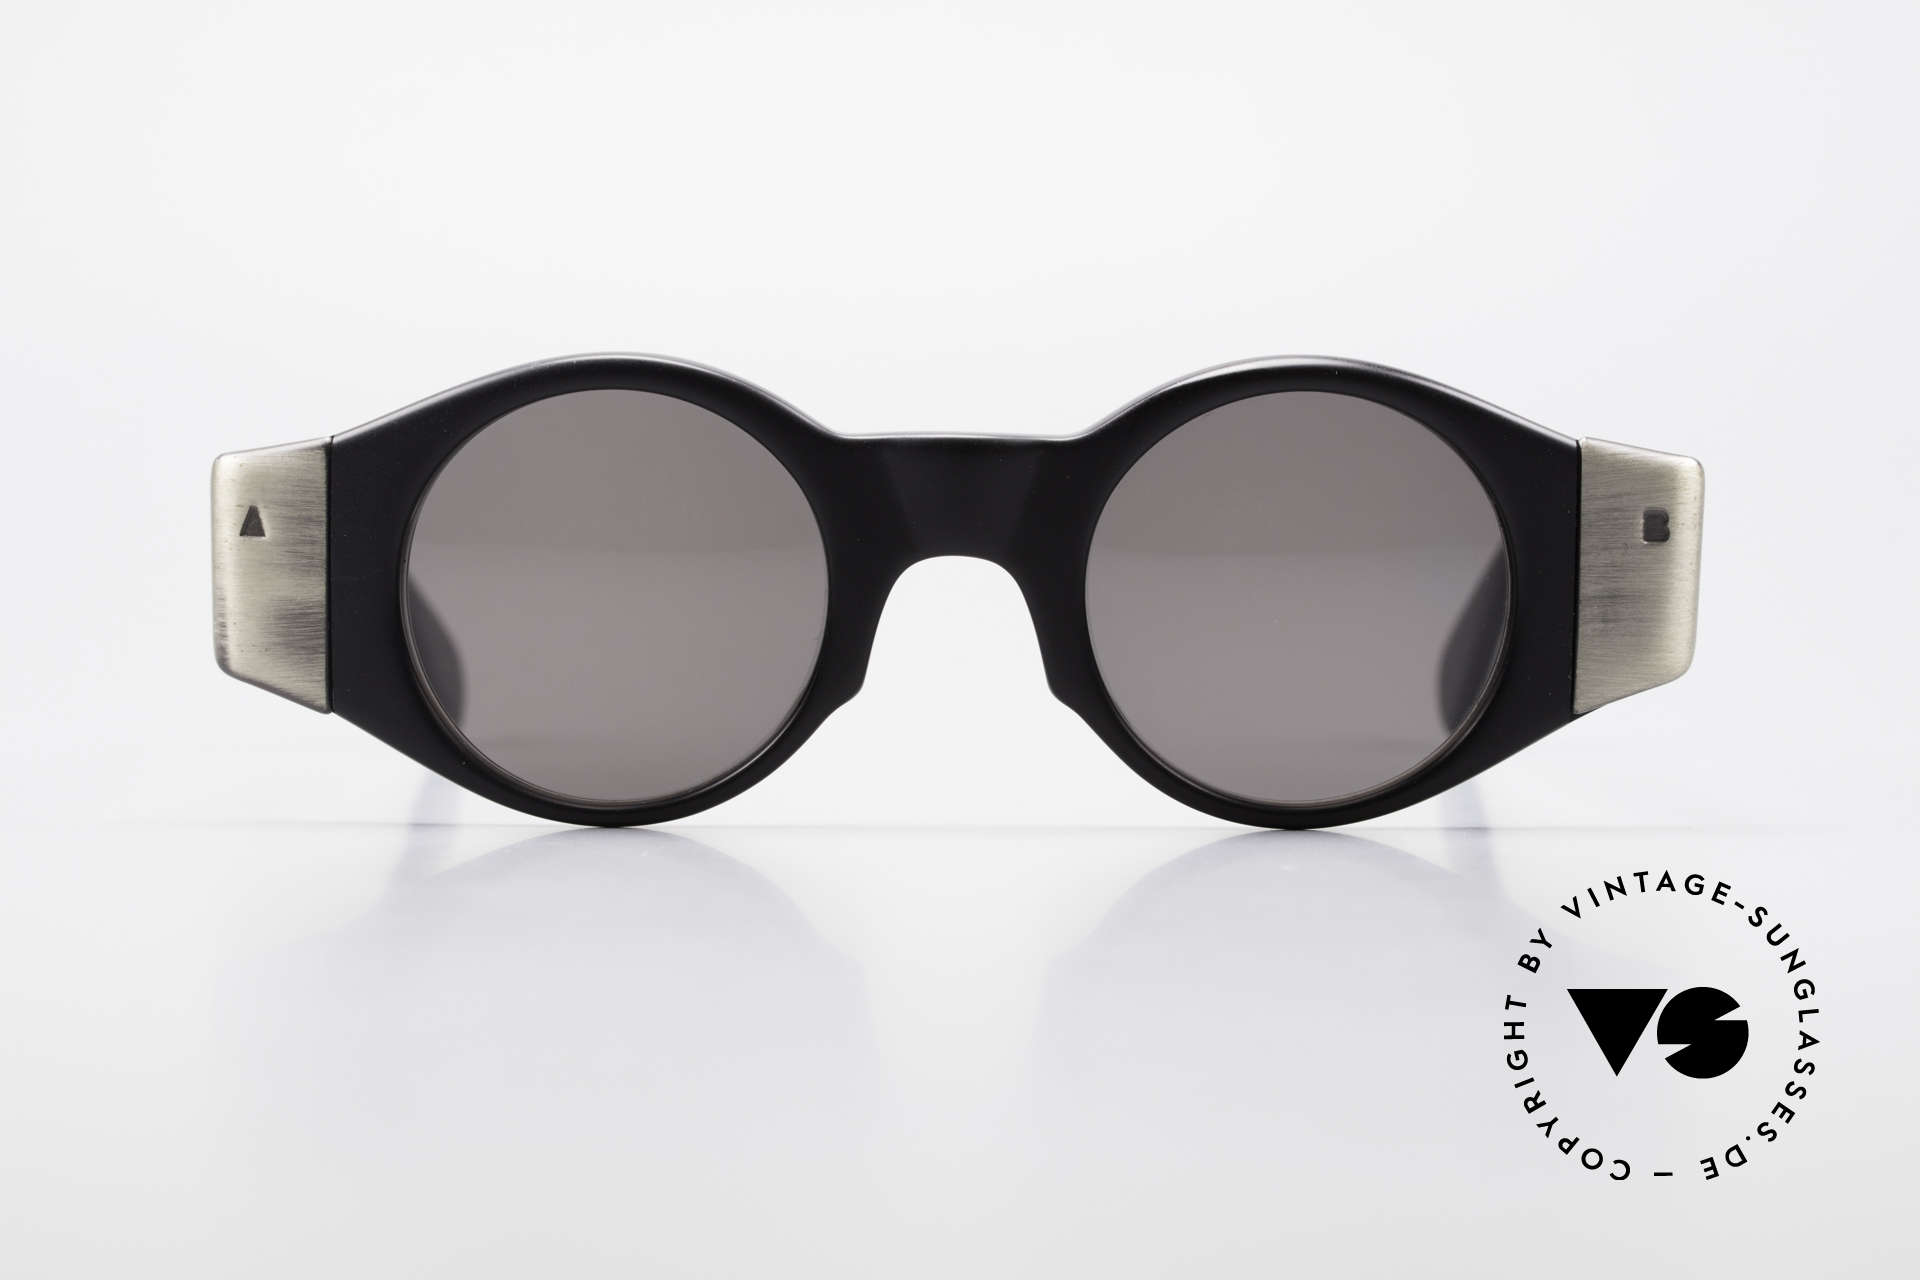 Bada BL686 Rare High End 90's Sunglasses, designed in Los Angeles and produced in Sabae (Japan), Made for Men and Women